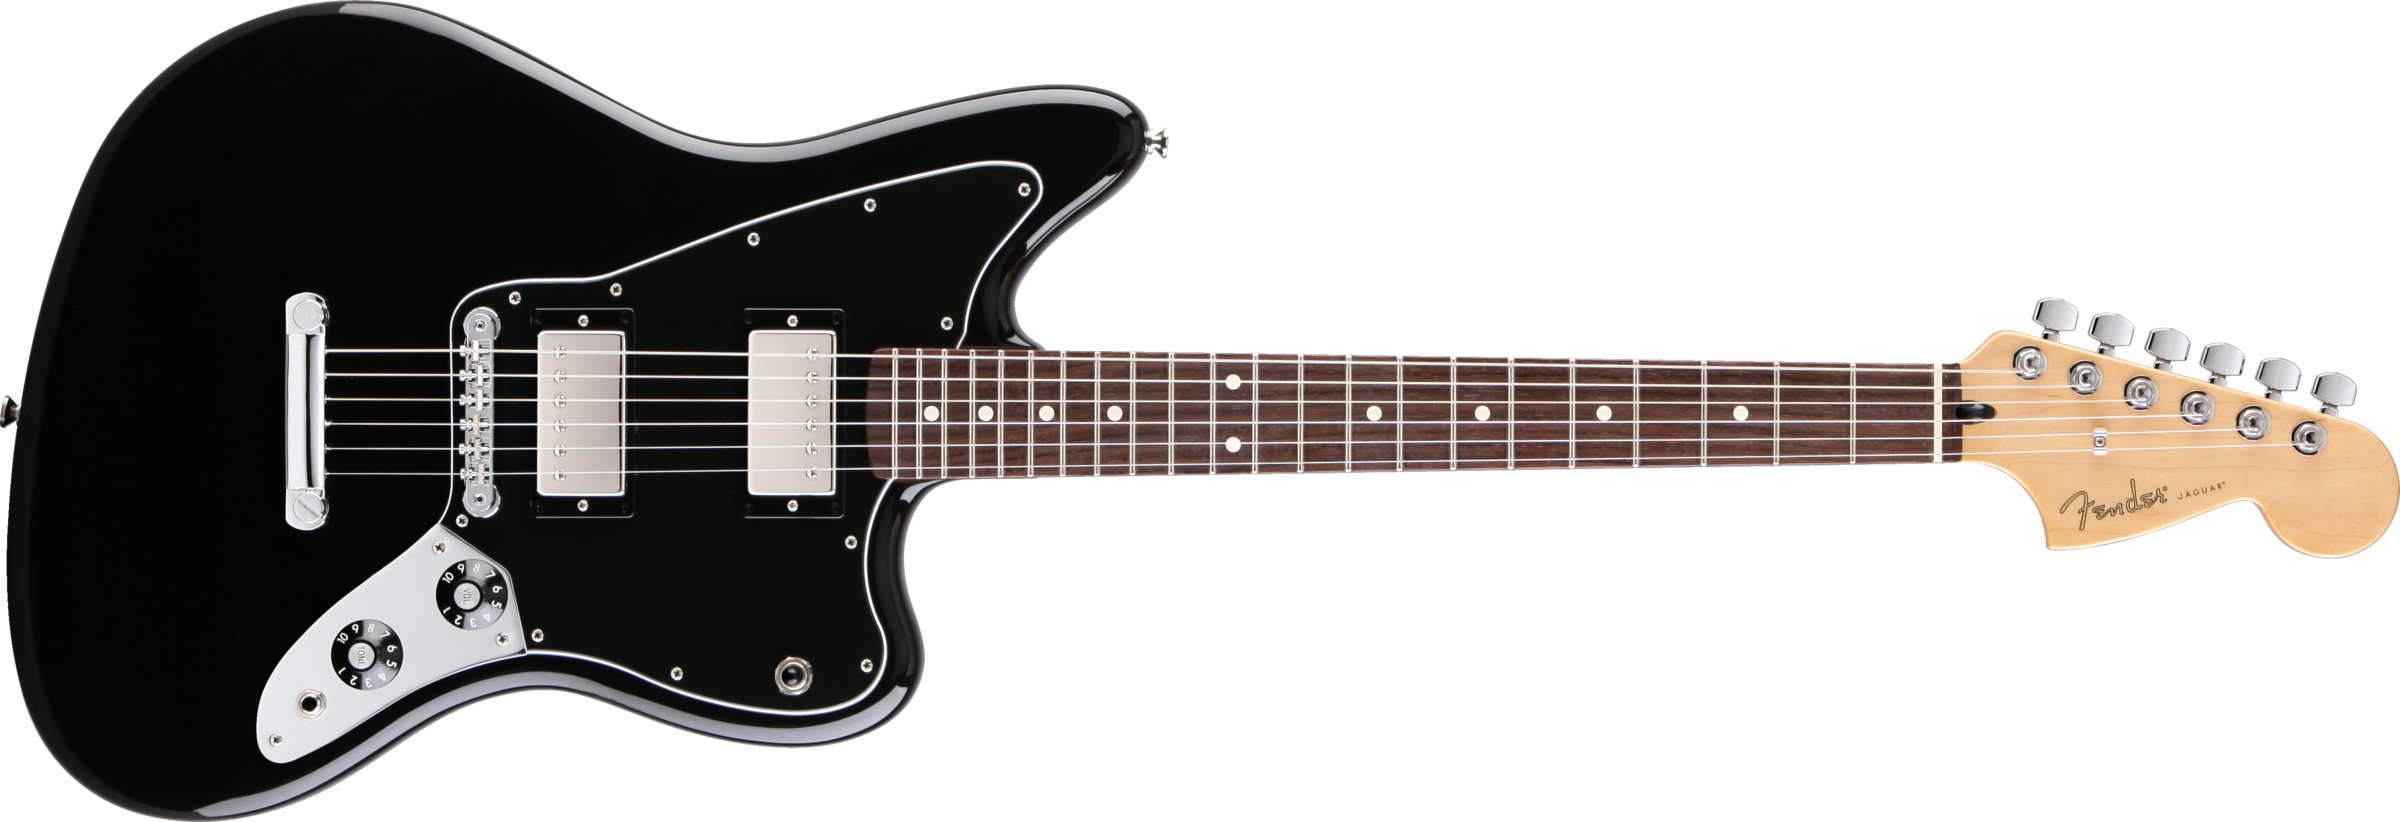 fender blacktop series review fender puts on a spurt audiofanzine. Black Bedroom Furniture Sets. Home Design Ideas